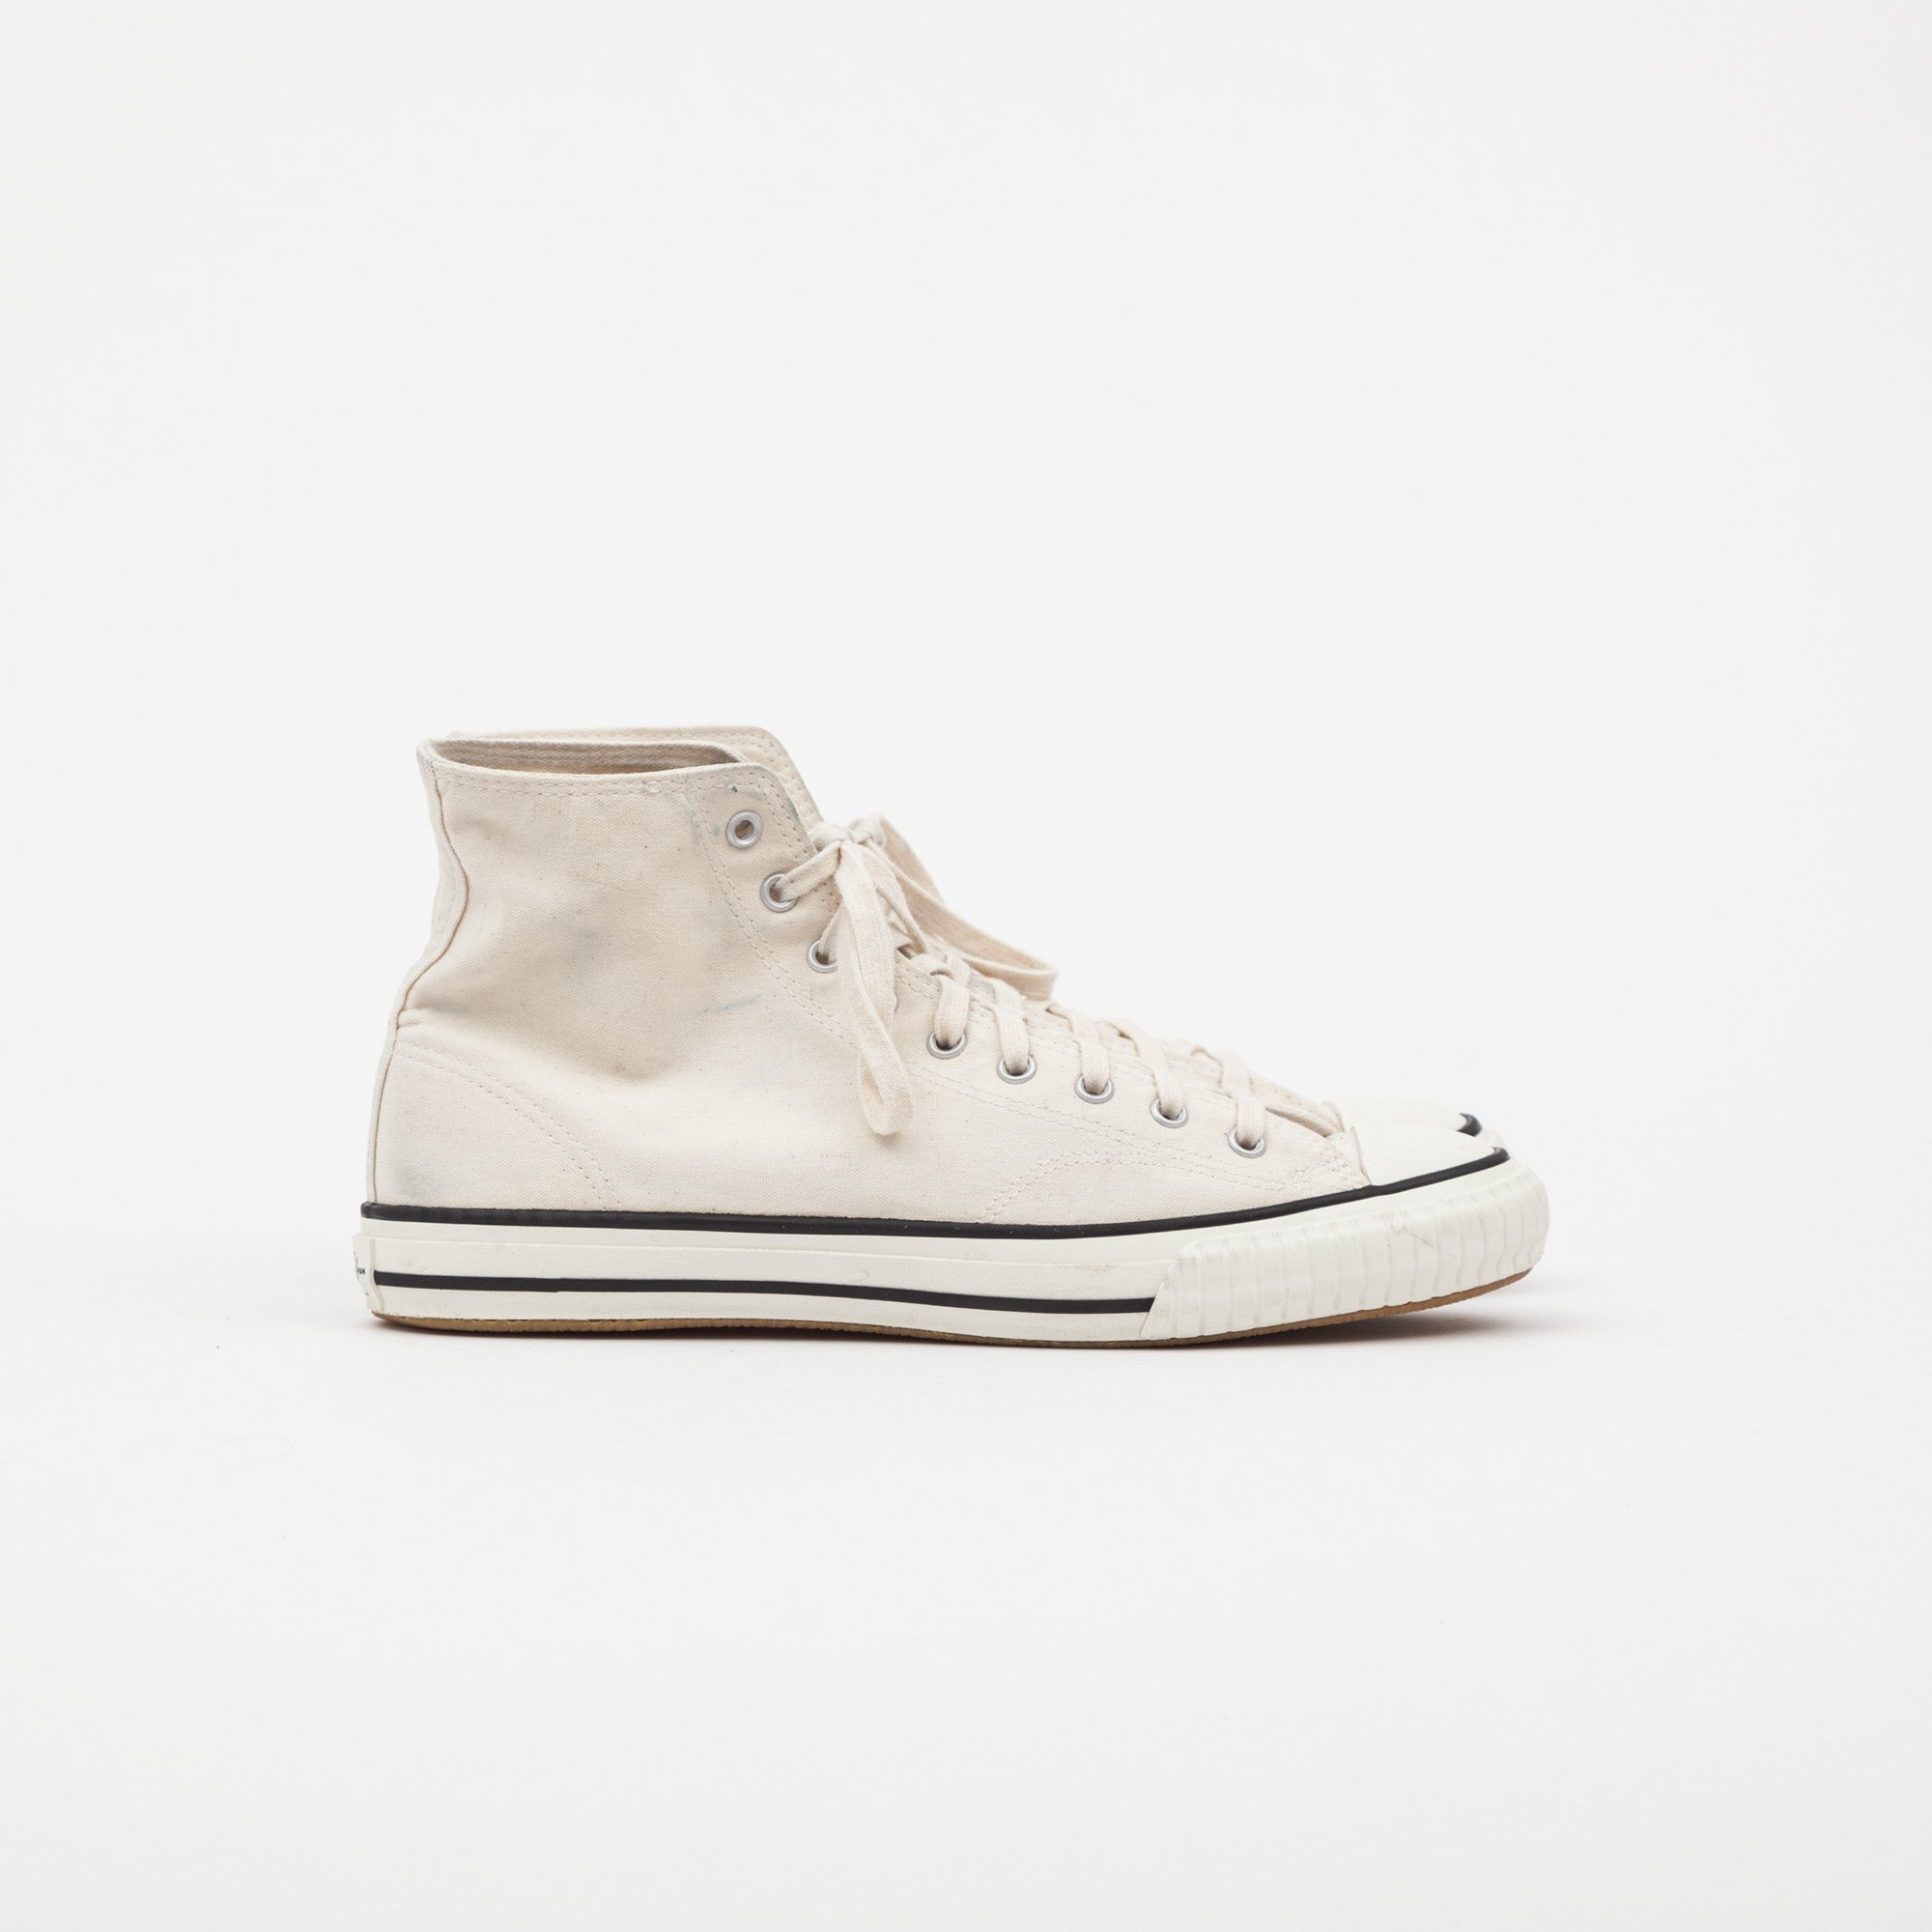 John Lofgren Self Edge Dessau High Top Sneakers